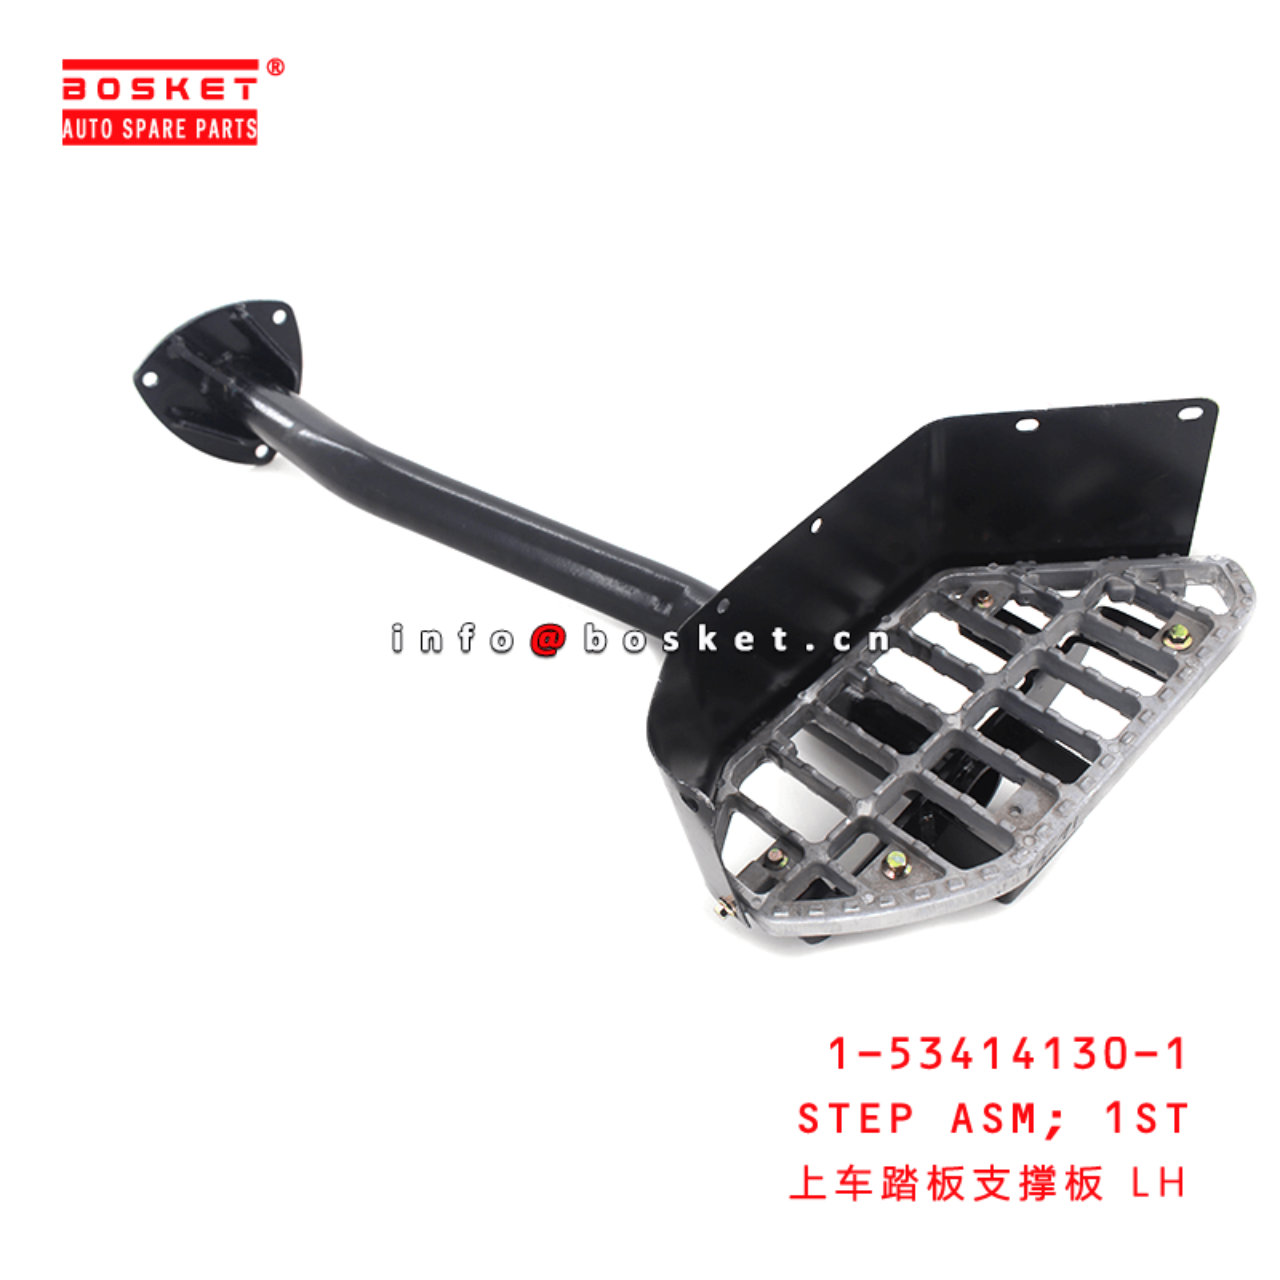 1-53414130-1 First Step Assembly 1534141301 Suitable for ISUZU FVR34